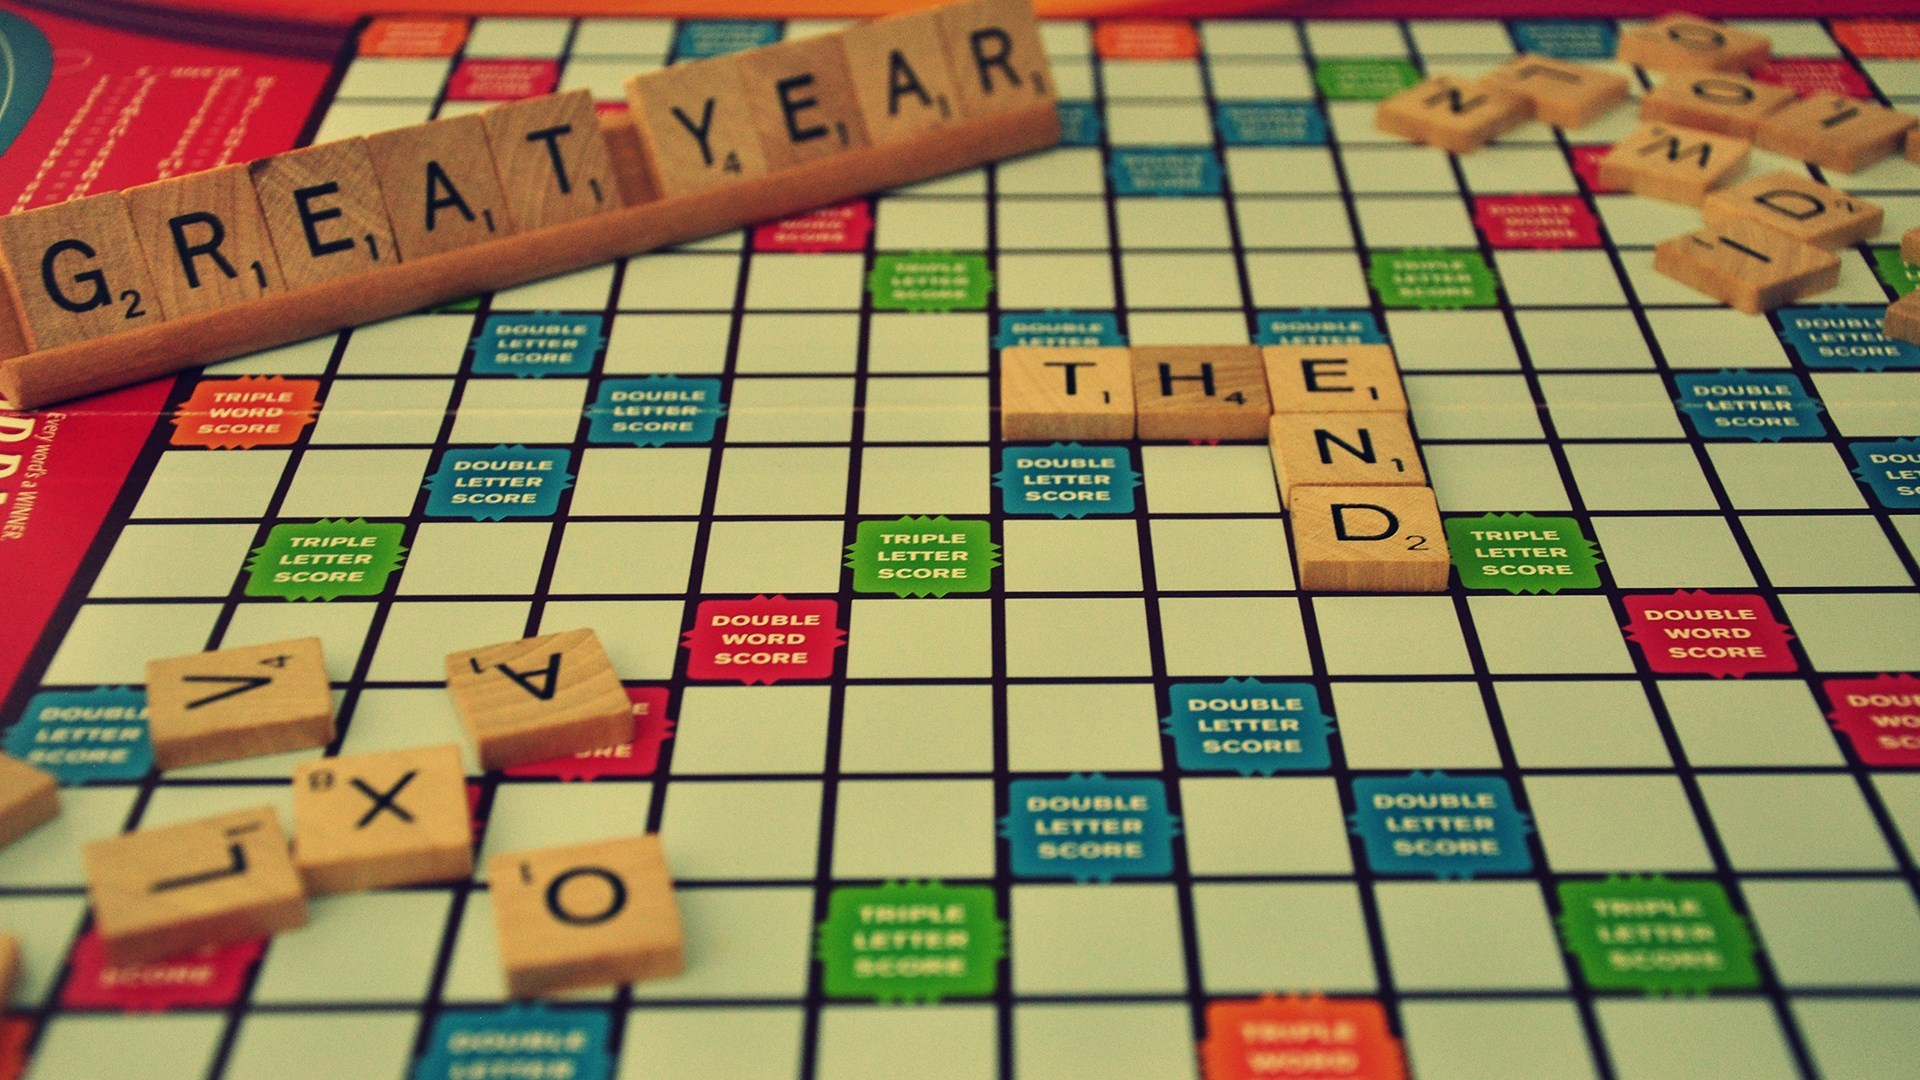 scrabble great year game